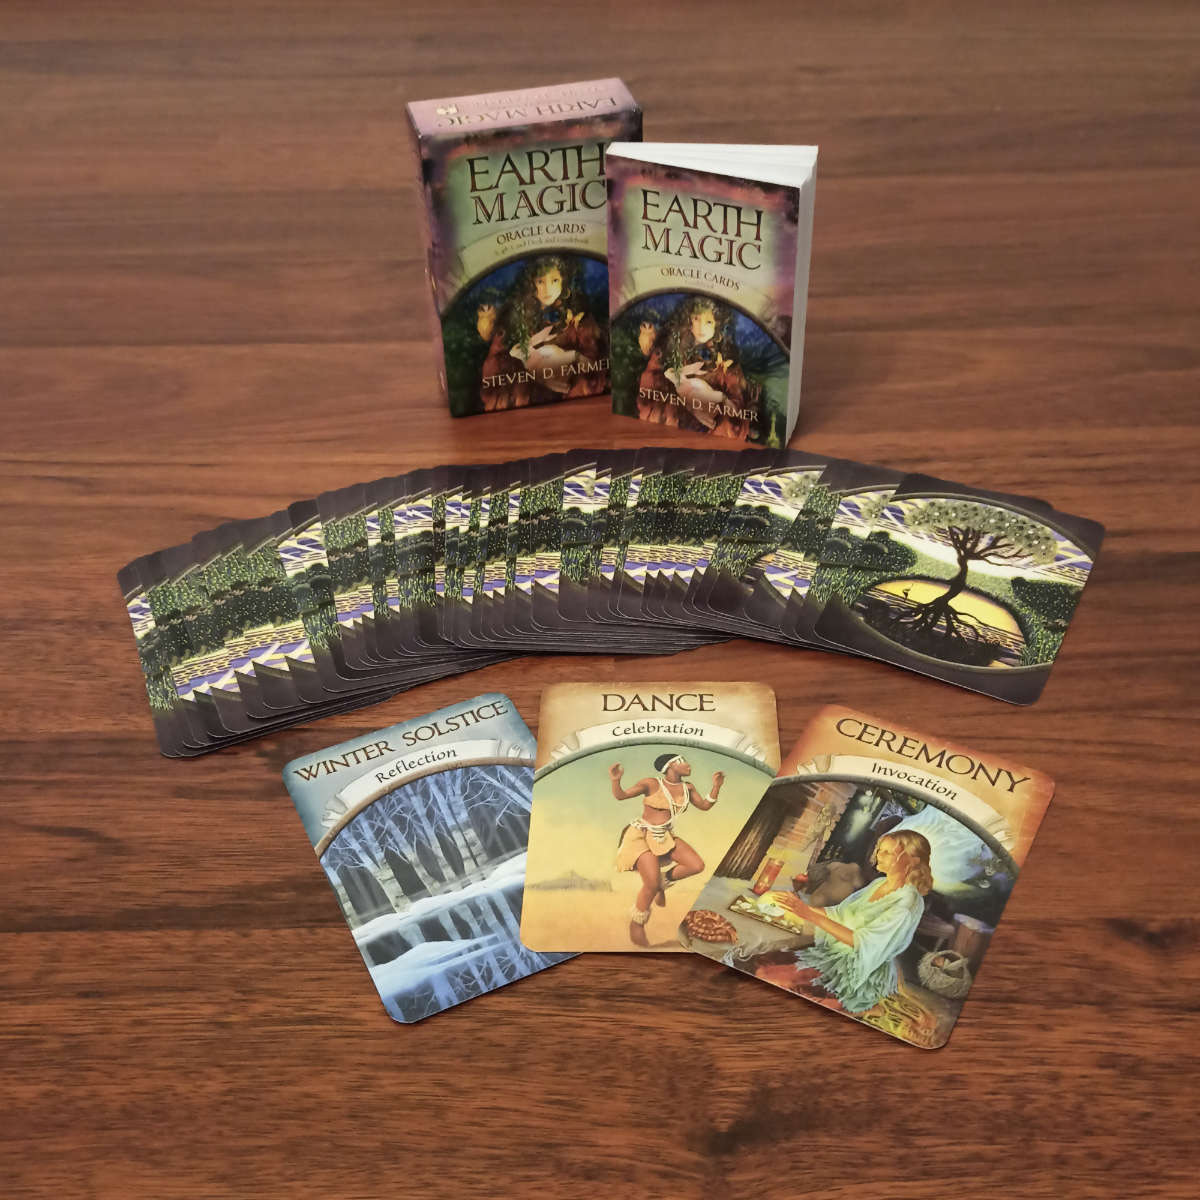 Oracle Cards: Earth Magic - Example cards on the floor